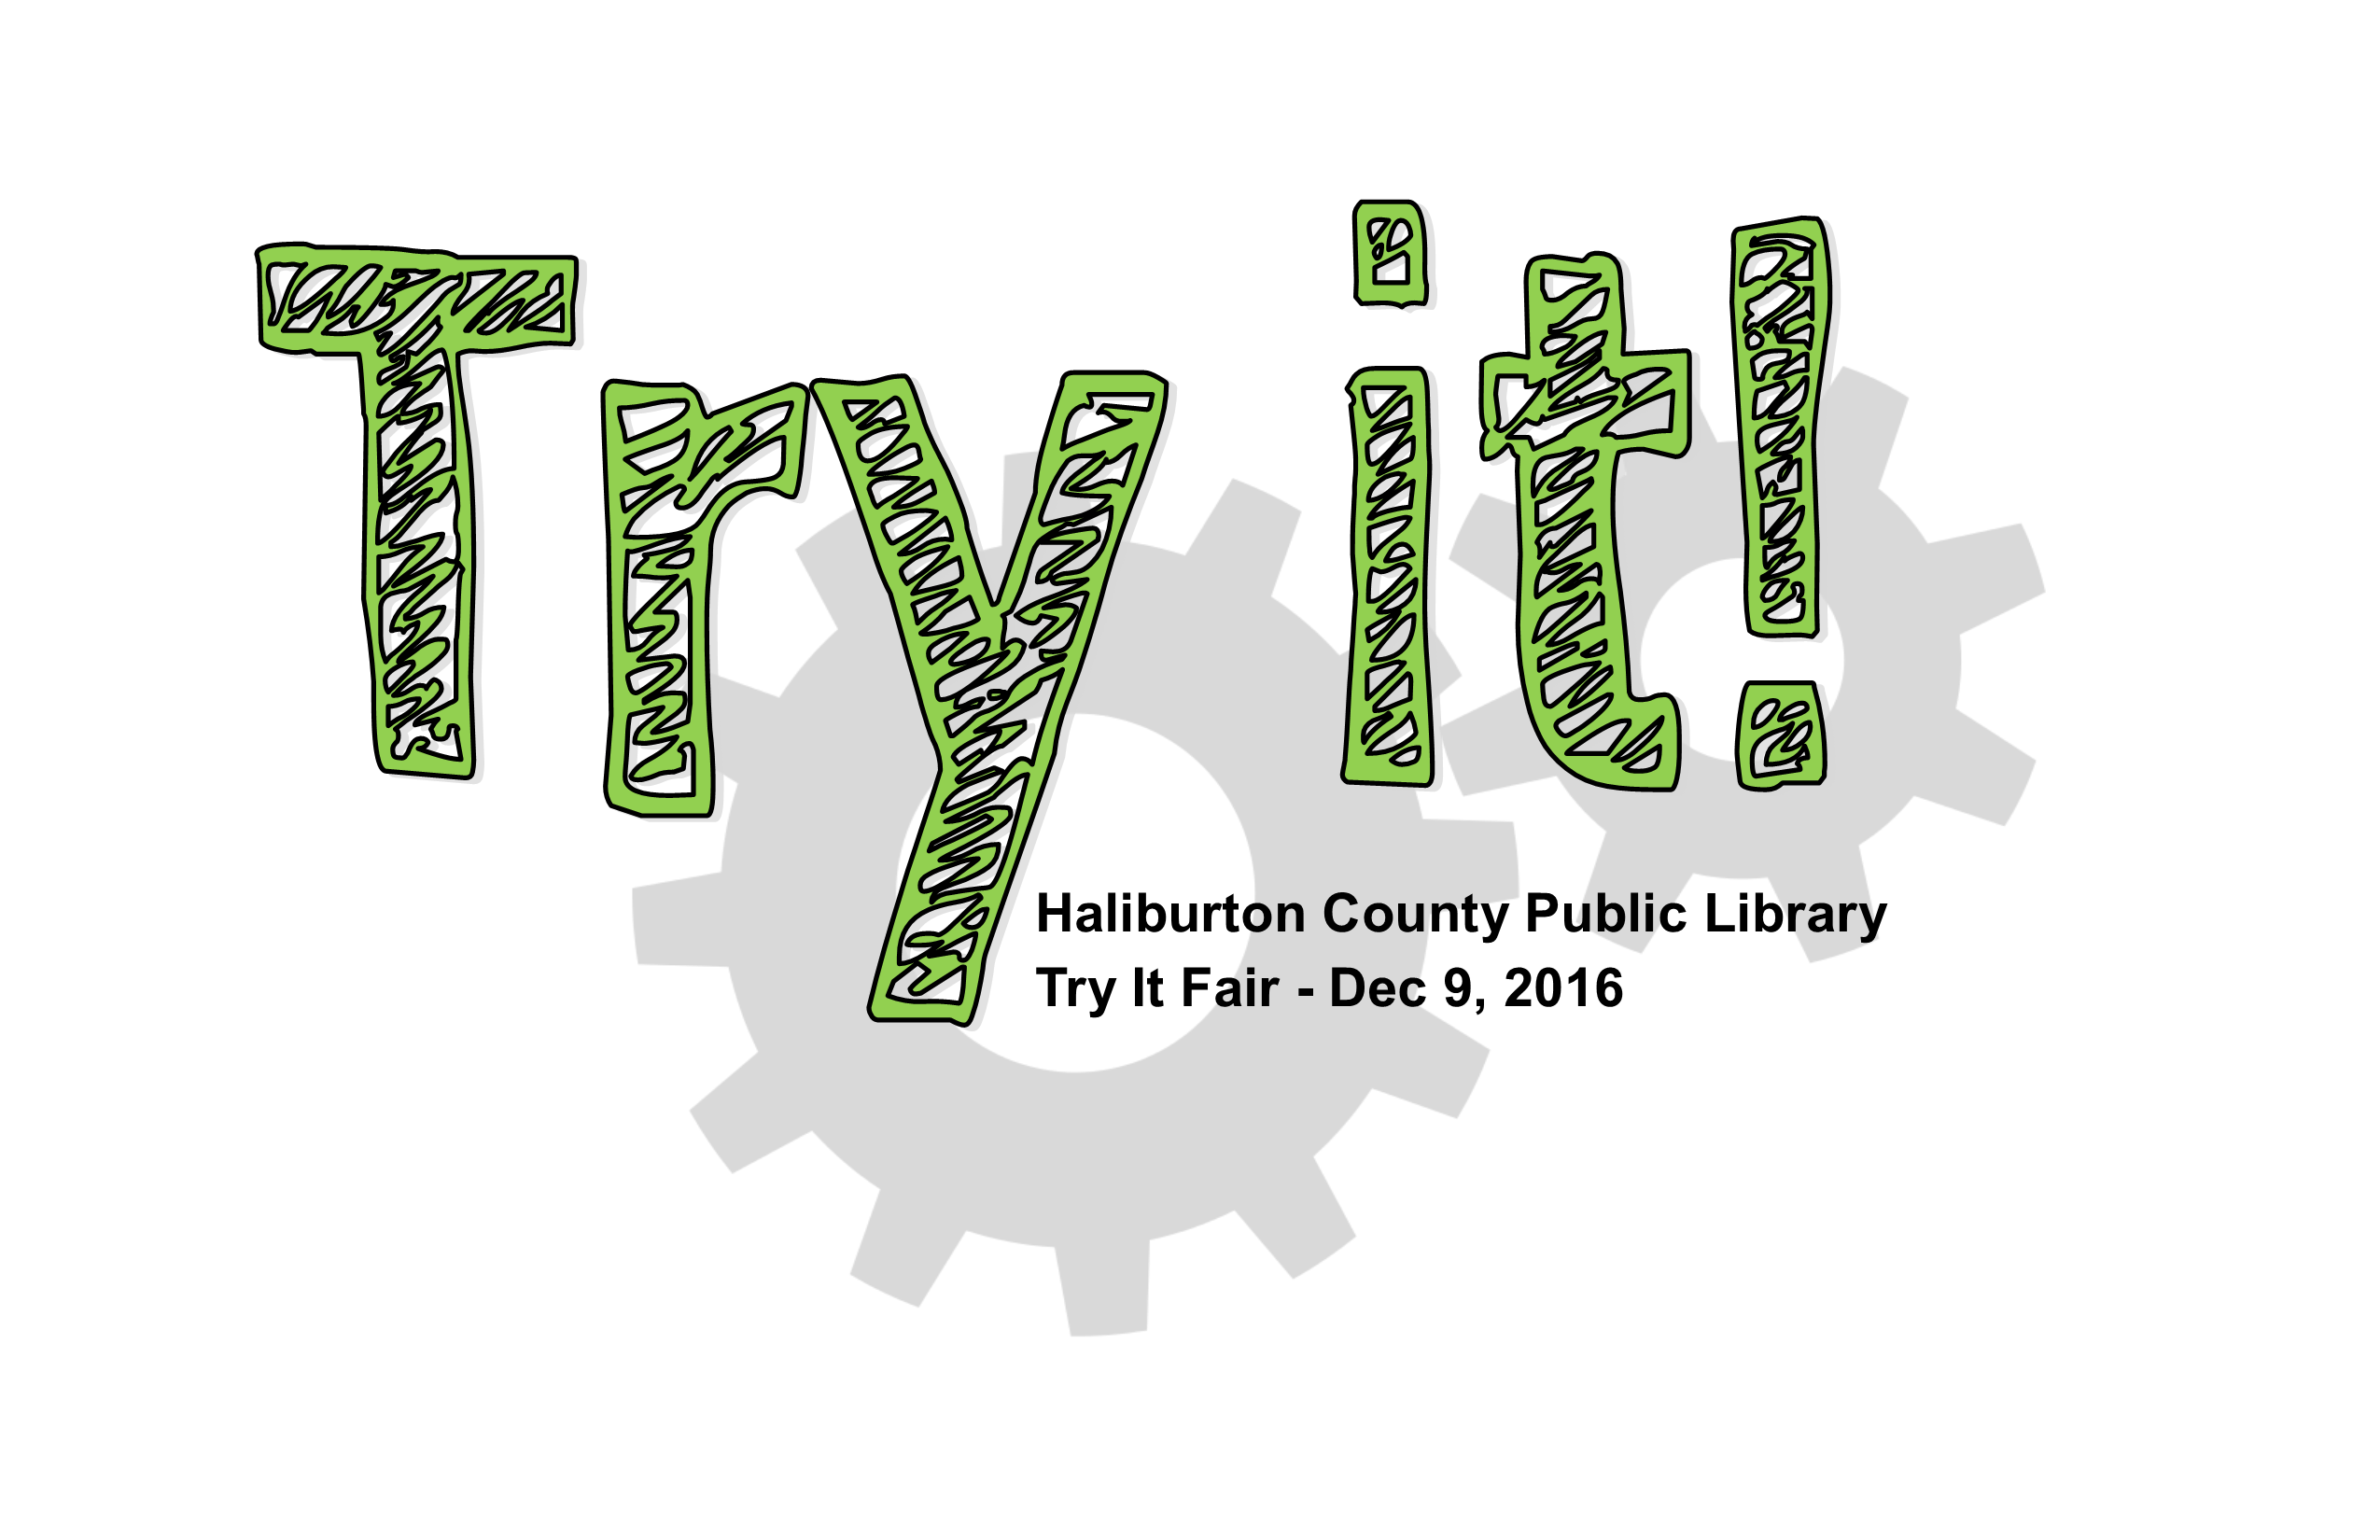 Try it fair logo